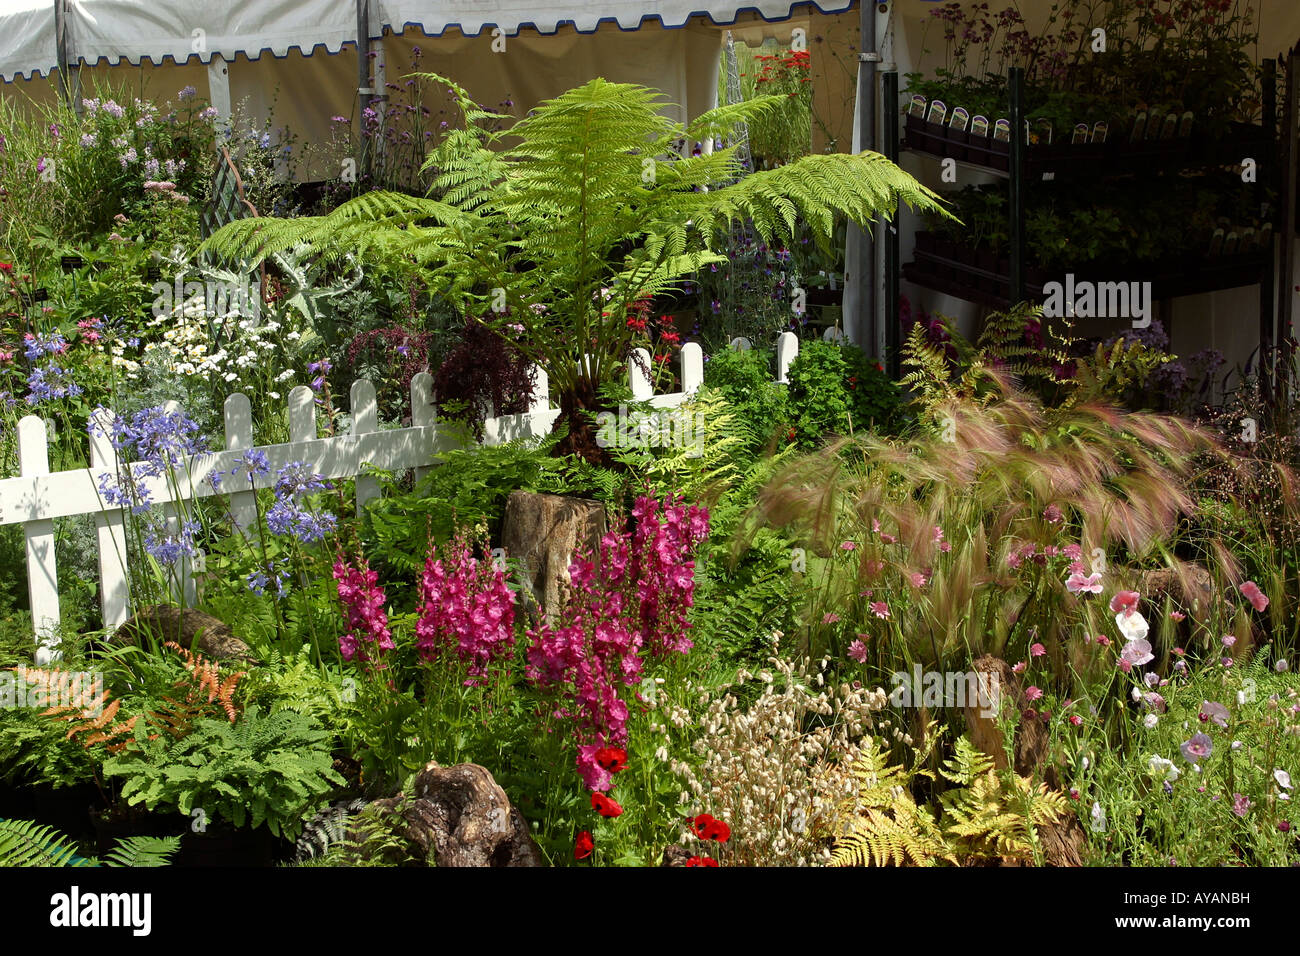 Uk cheshire knutsford tatton hall rhs flower show well for Garden design knutsford